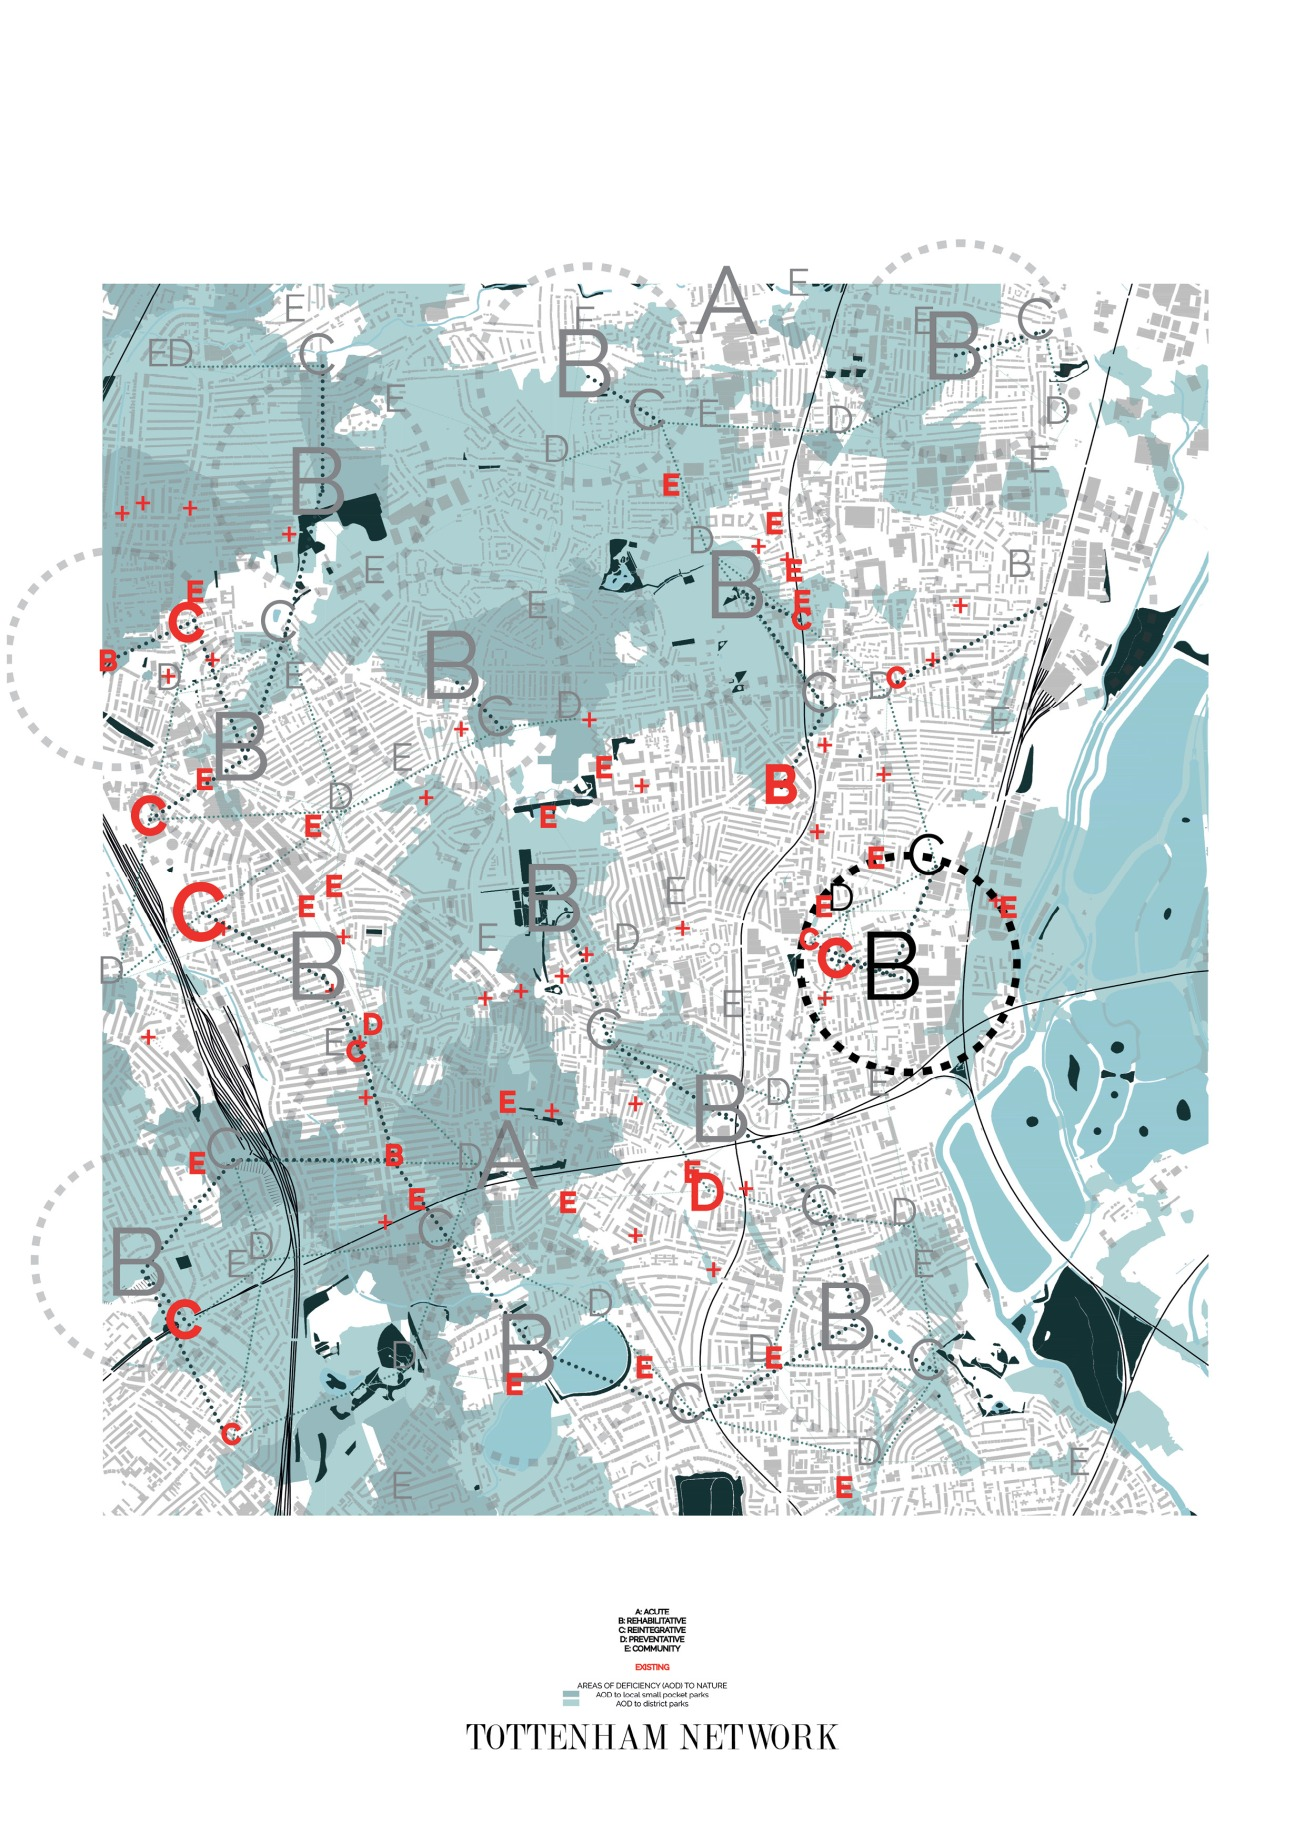 05. Network Mapping, Chen Man, Thesis Project (Final Year Masters, University of Nottingham)